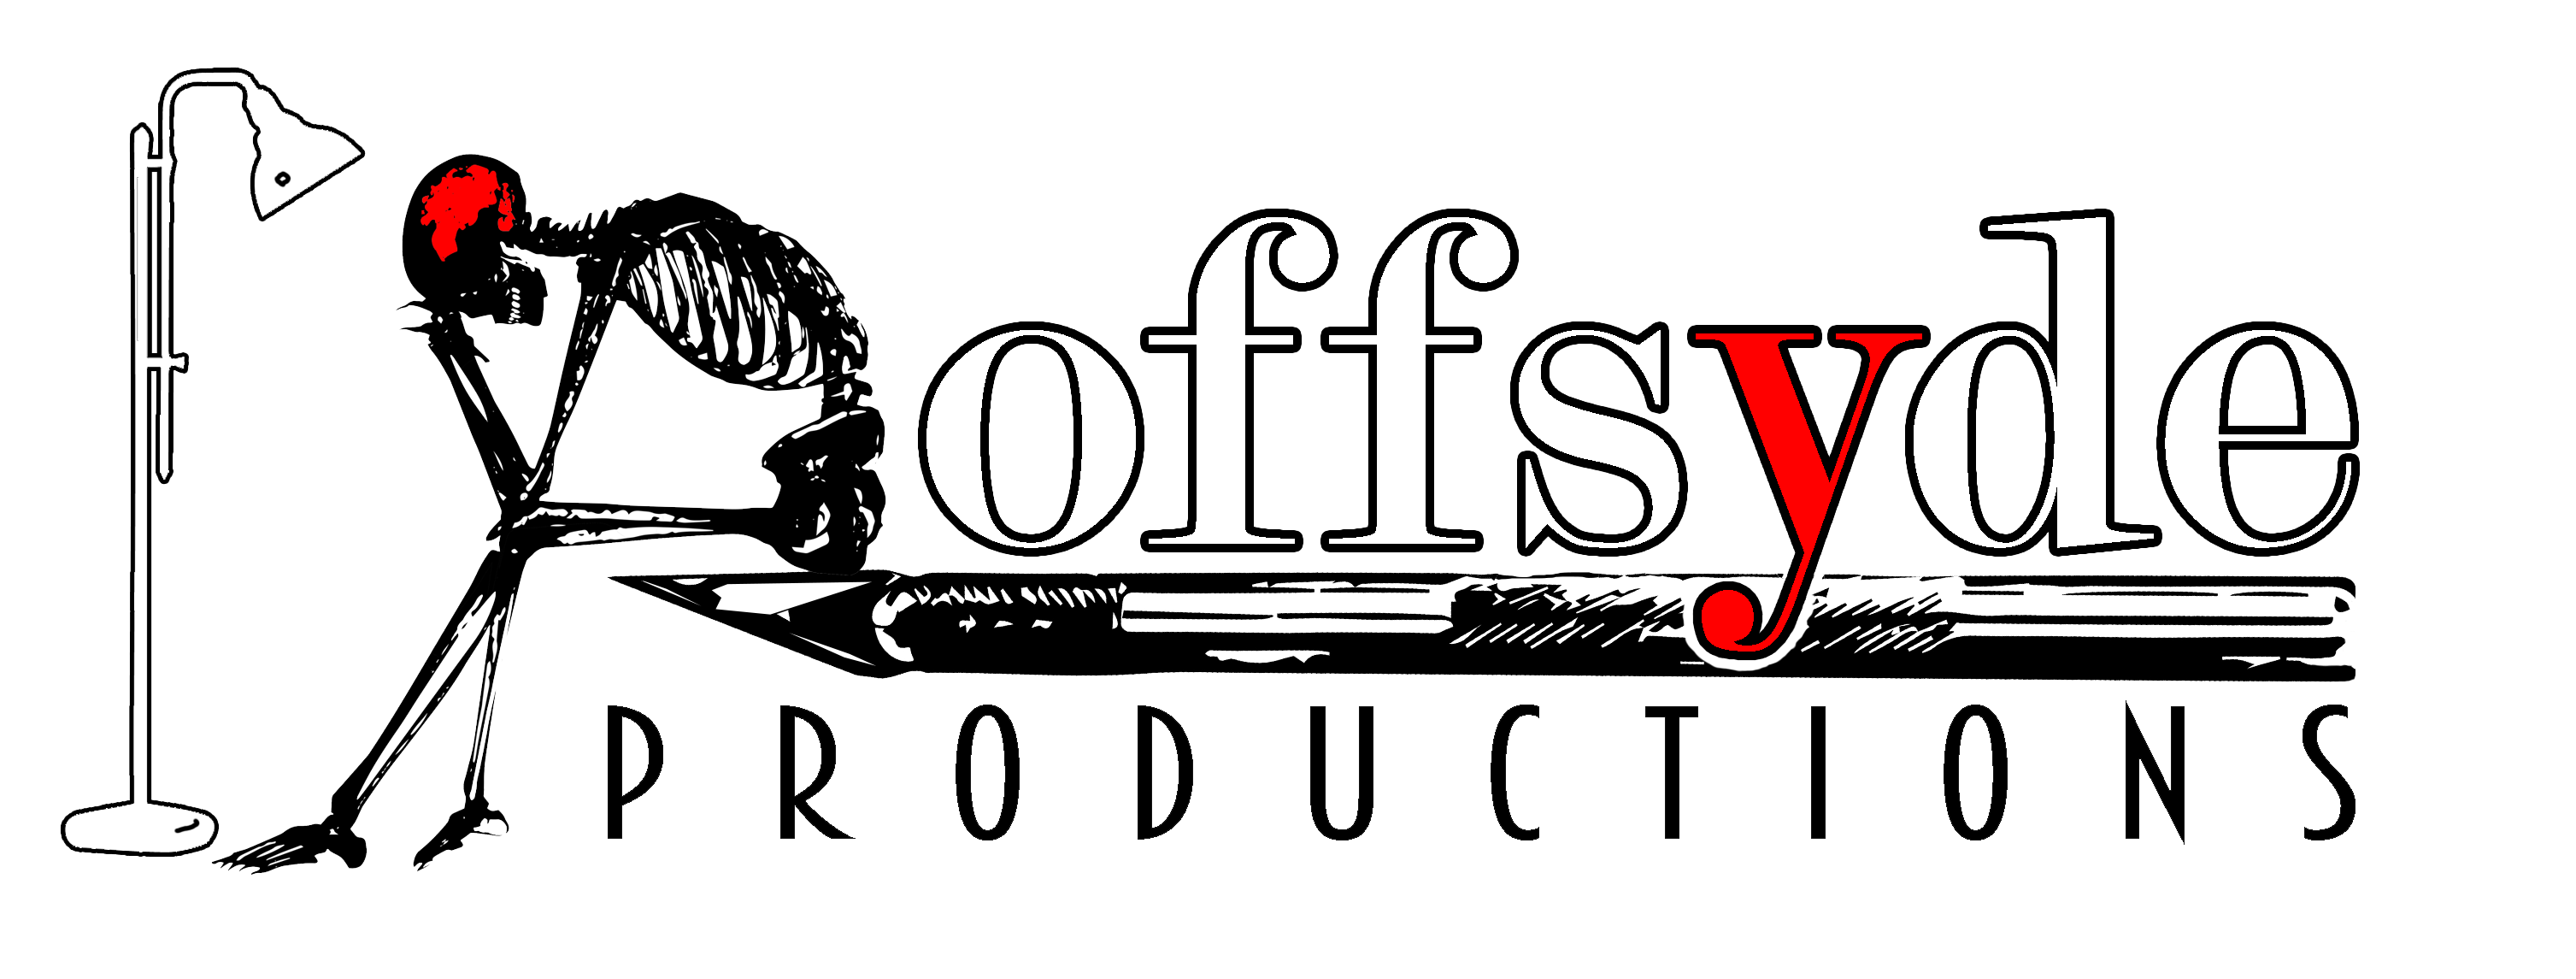 Offsyde Productions